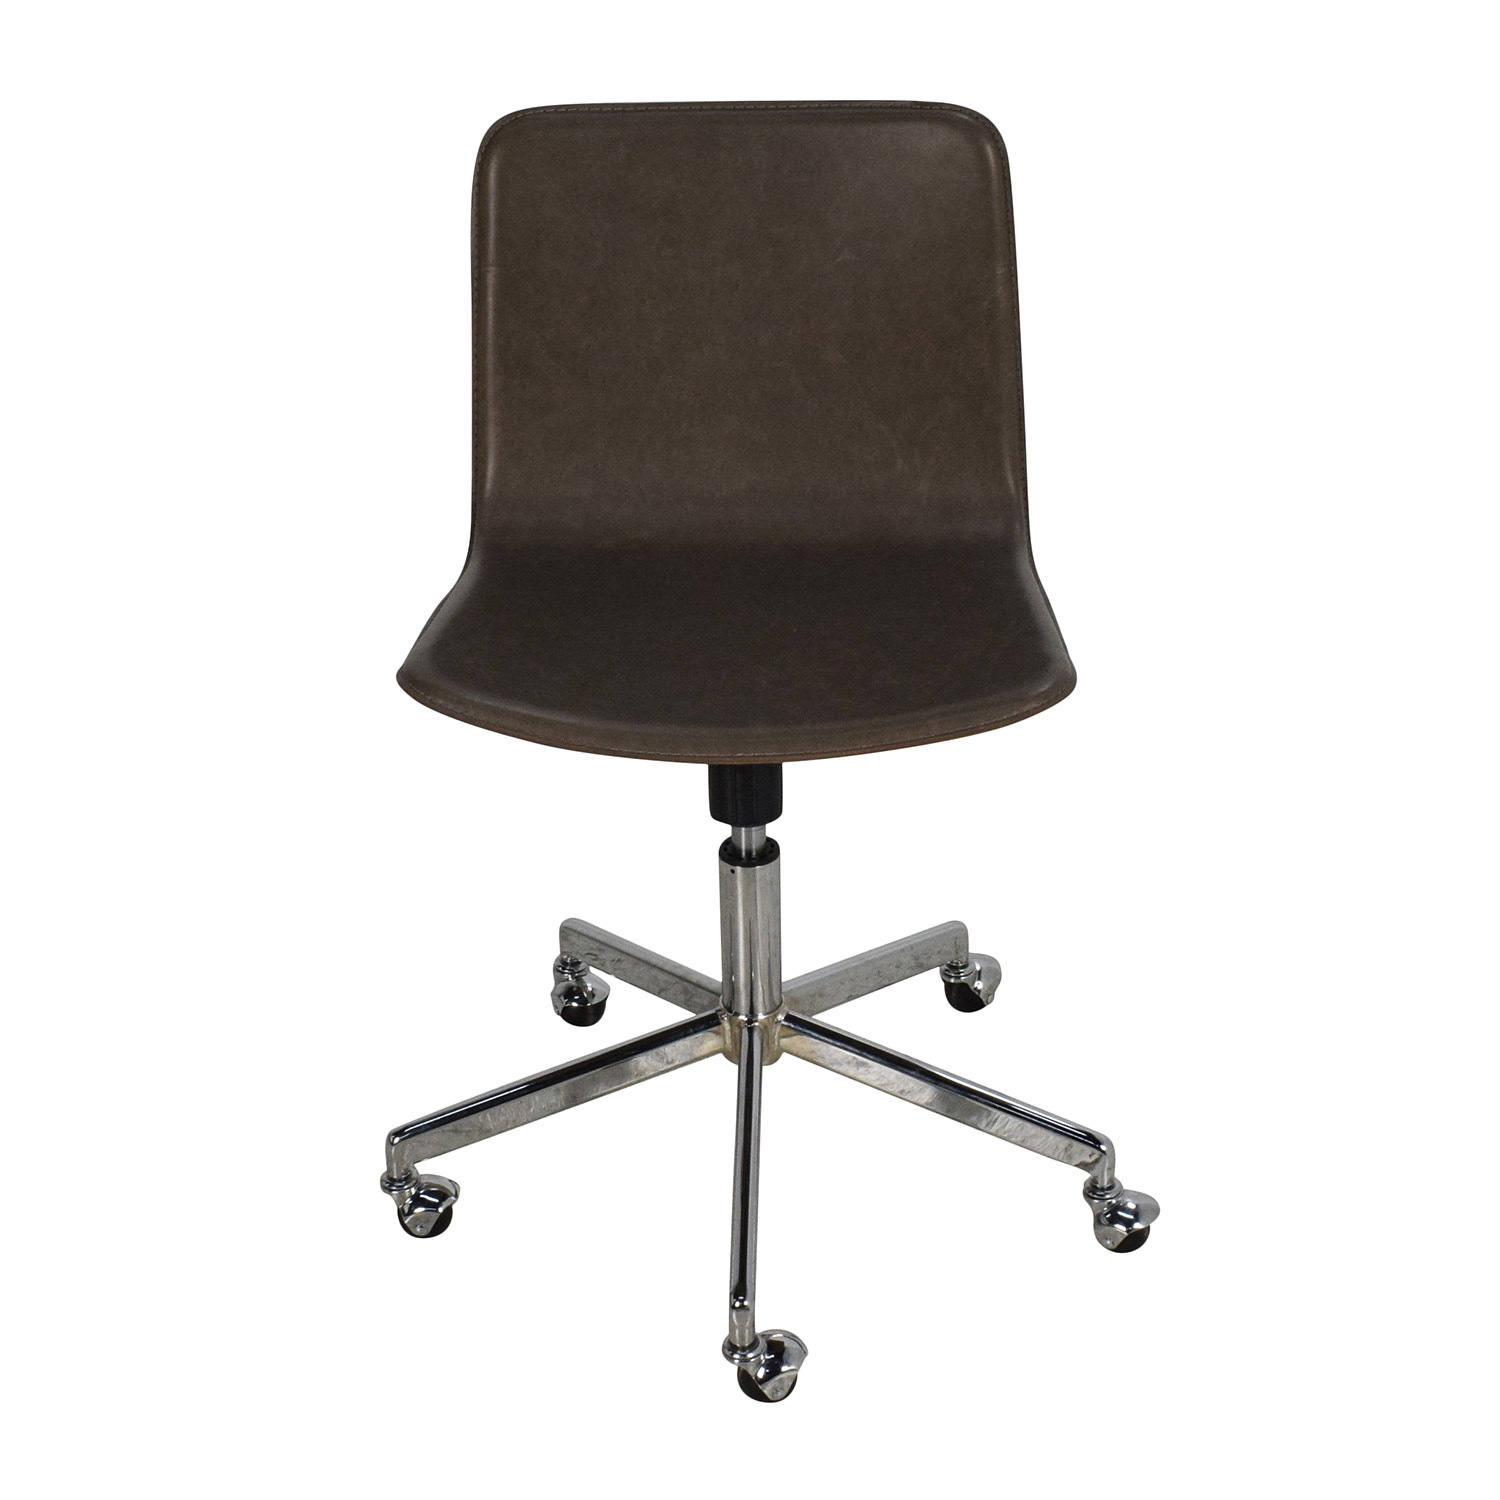 CB2 Stratum Office Chair / Chairs